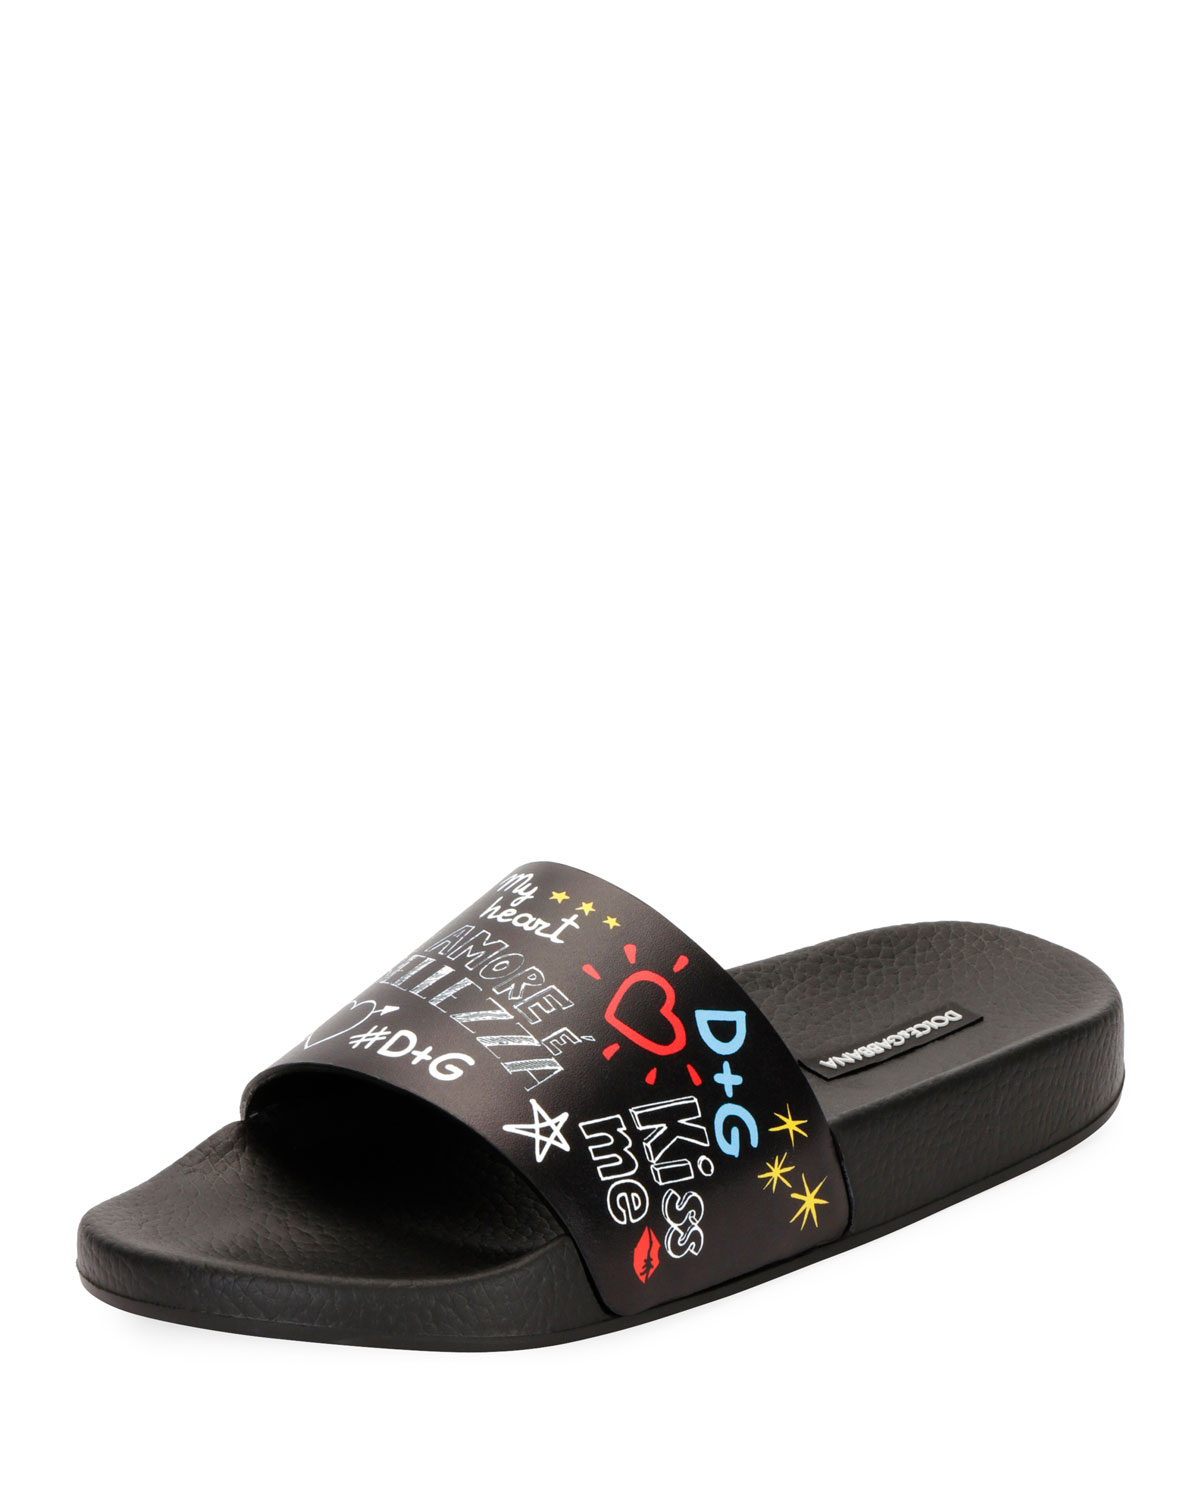 ff0ae56835567d Dolce   Gabbana Graffiti-Print Leather Pool Slide Sandal